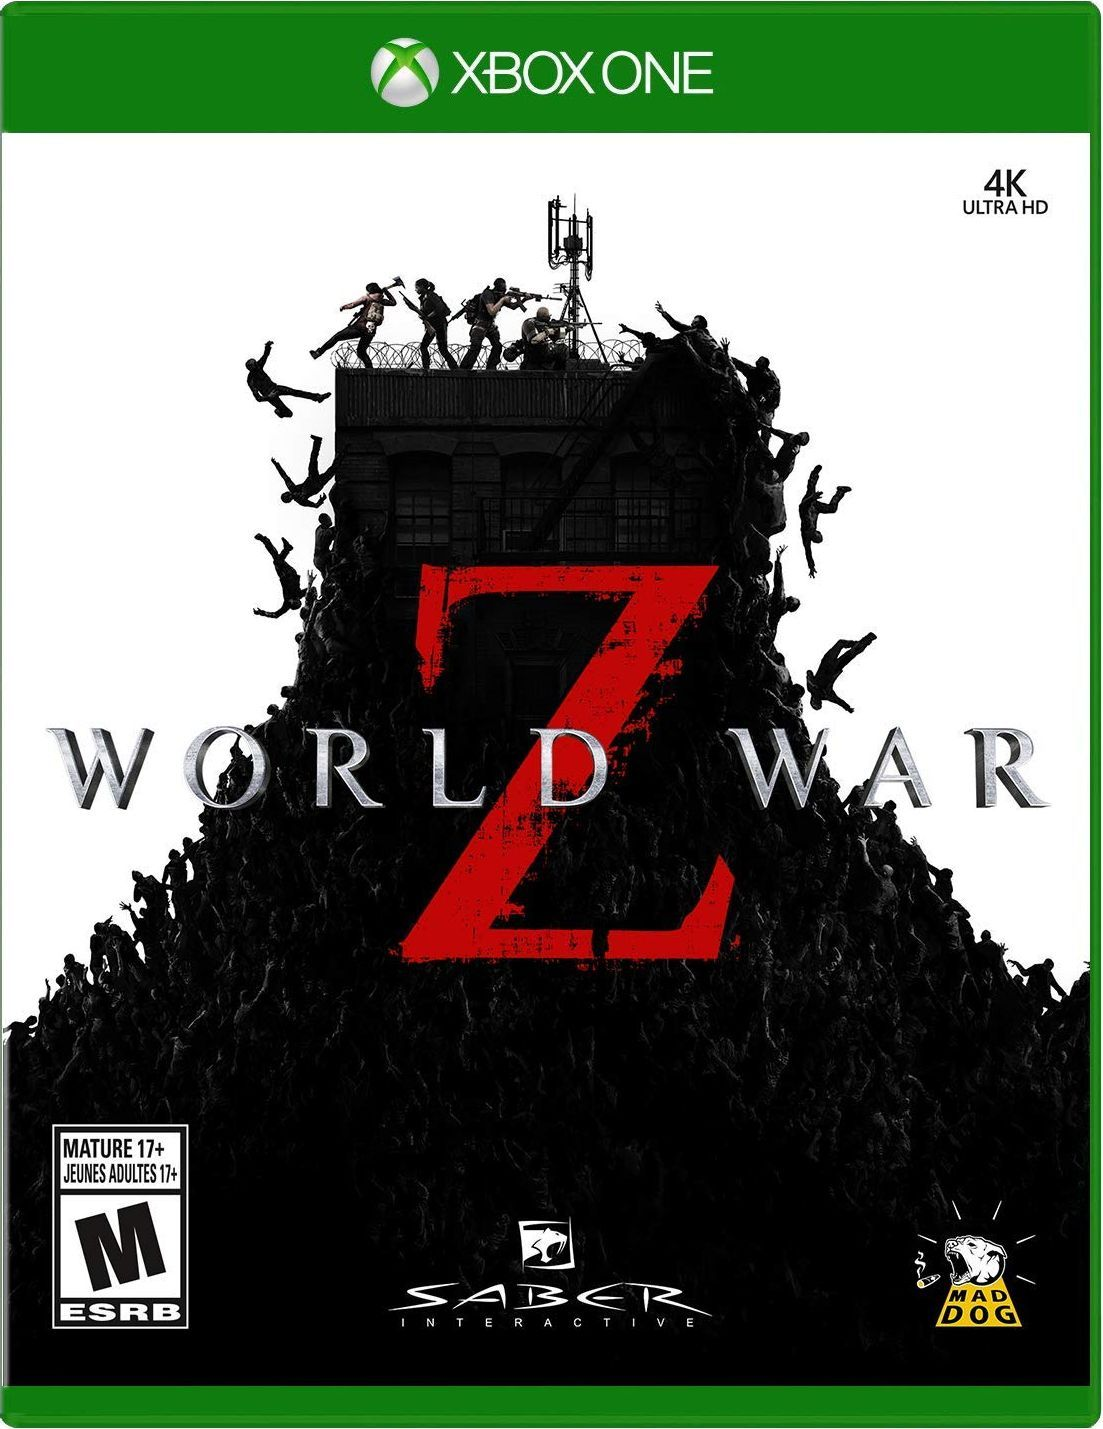 World War Z Ps4 games, Xbox one games, Playstation 4